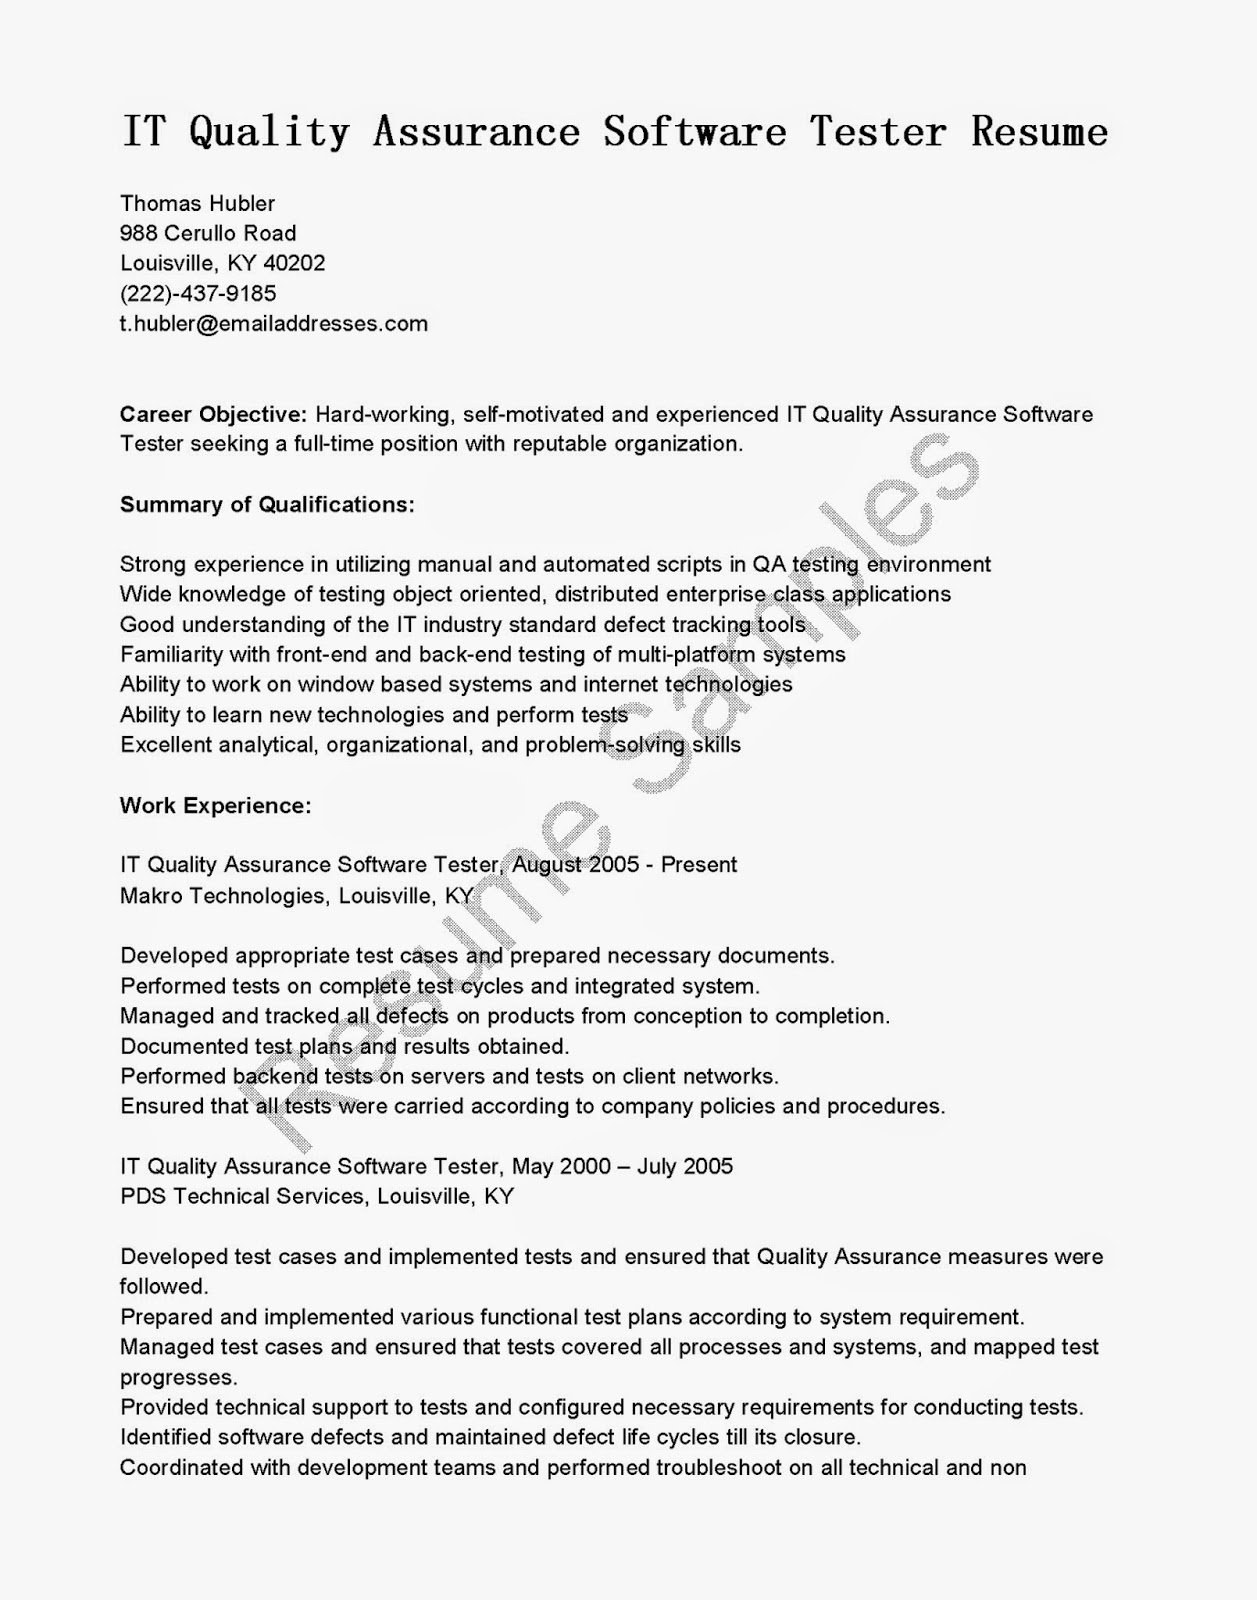 Software Quality Assurance Resume Sample Resume Samples It Quality Assurance Software Tester